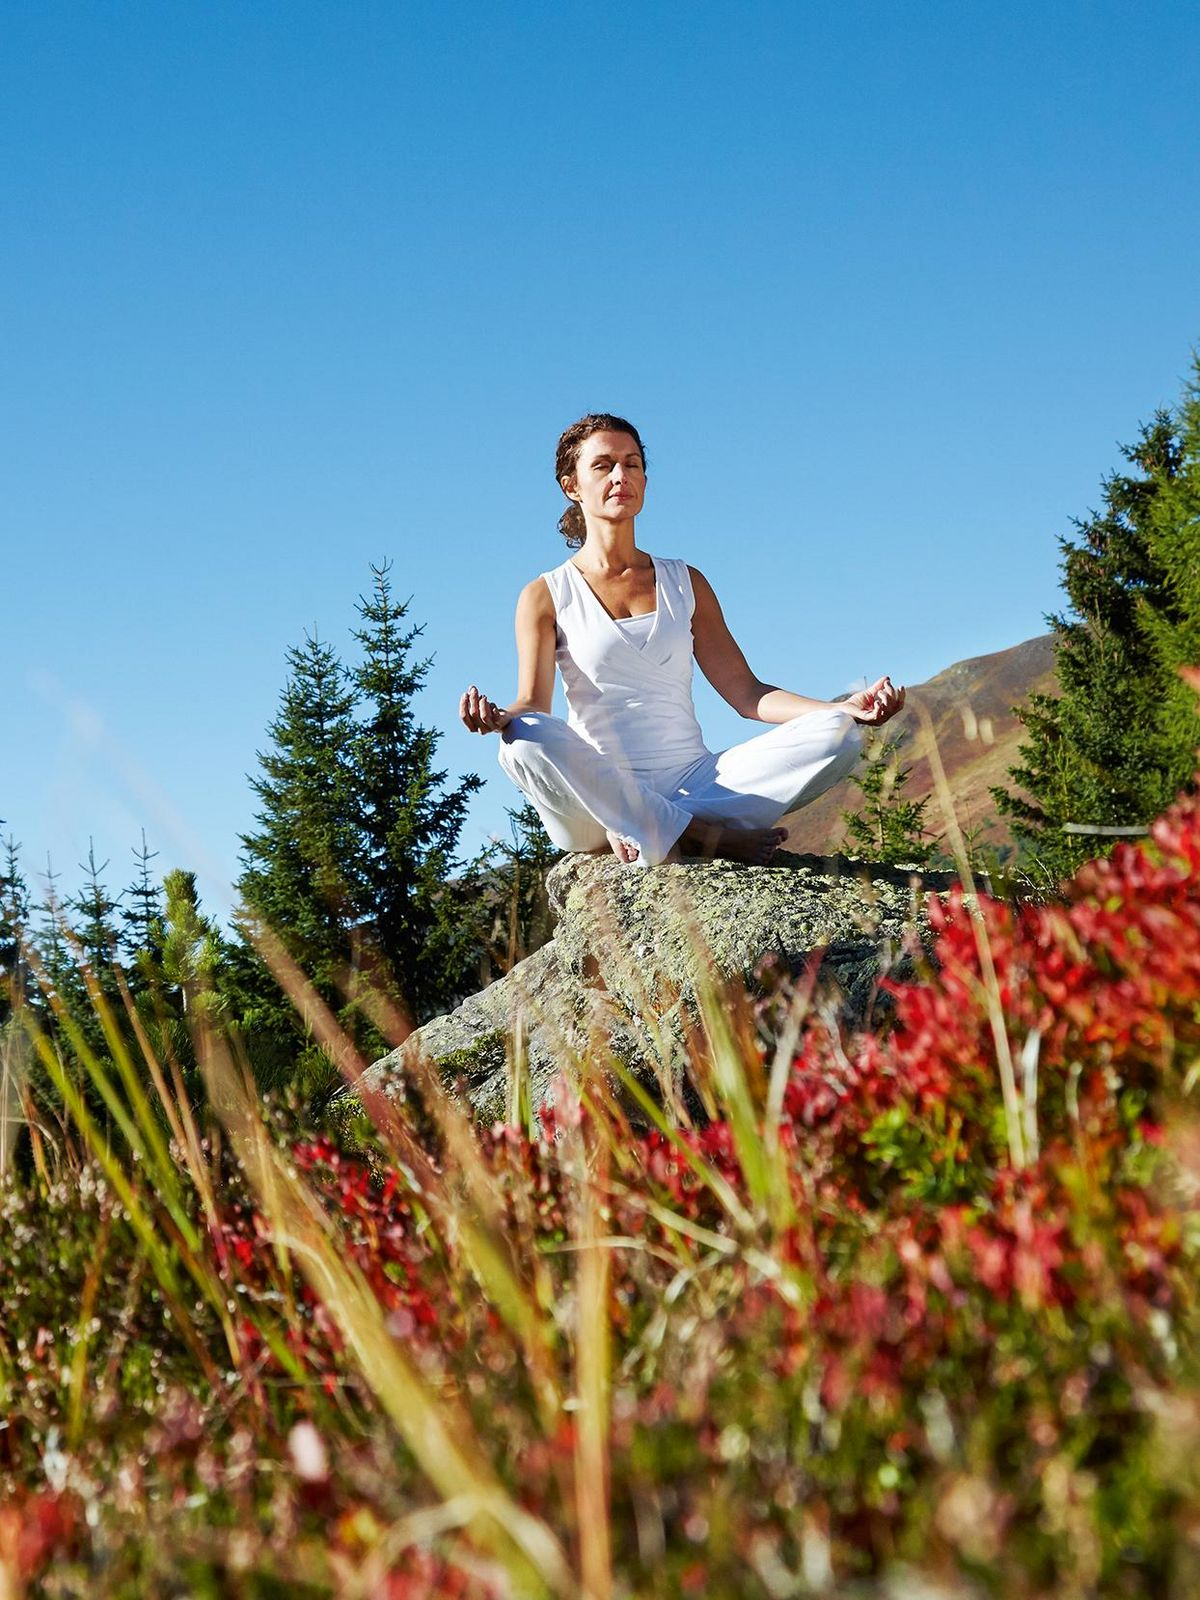 Yoga in the middle of Carinthia's nature